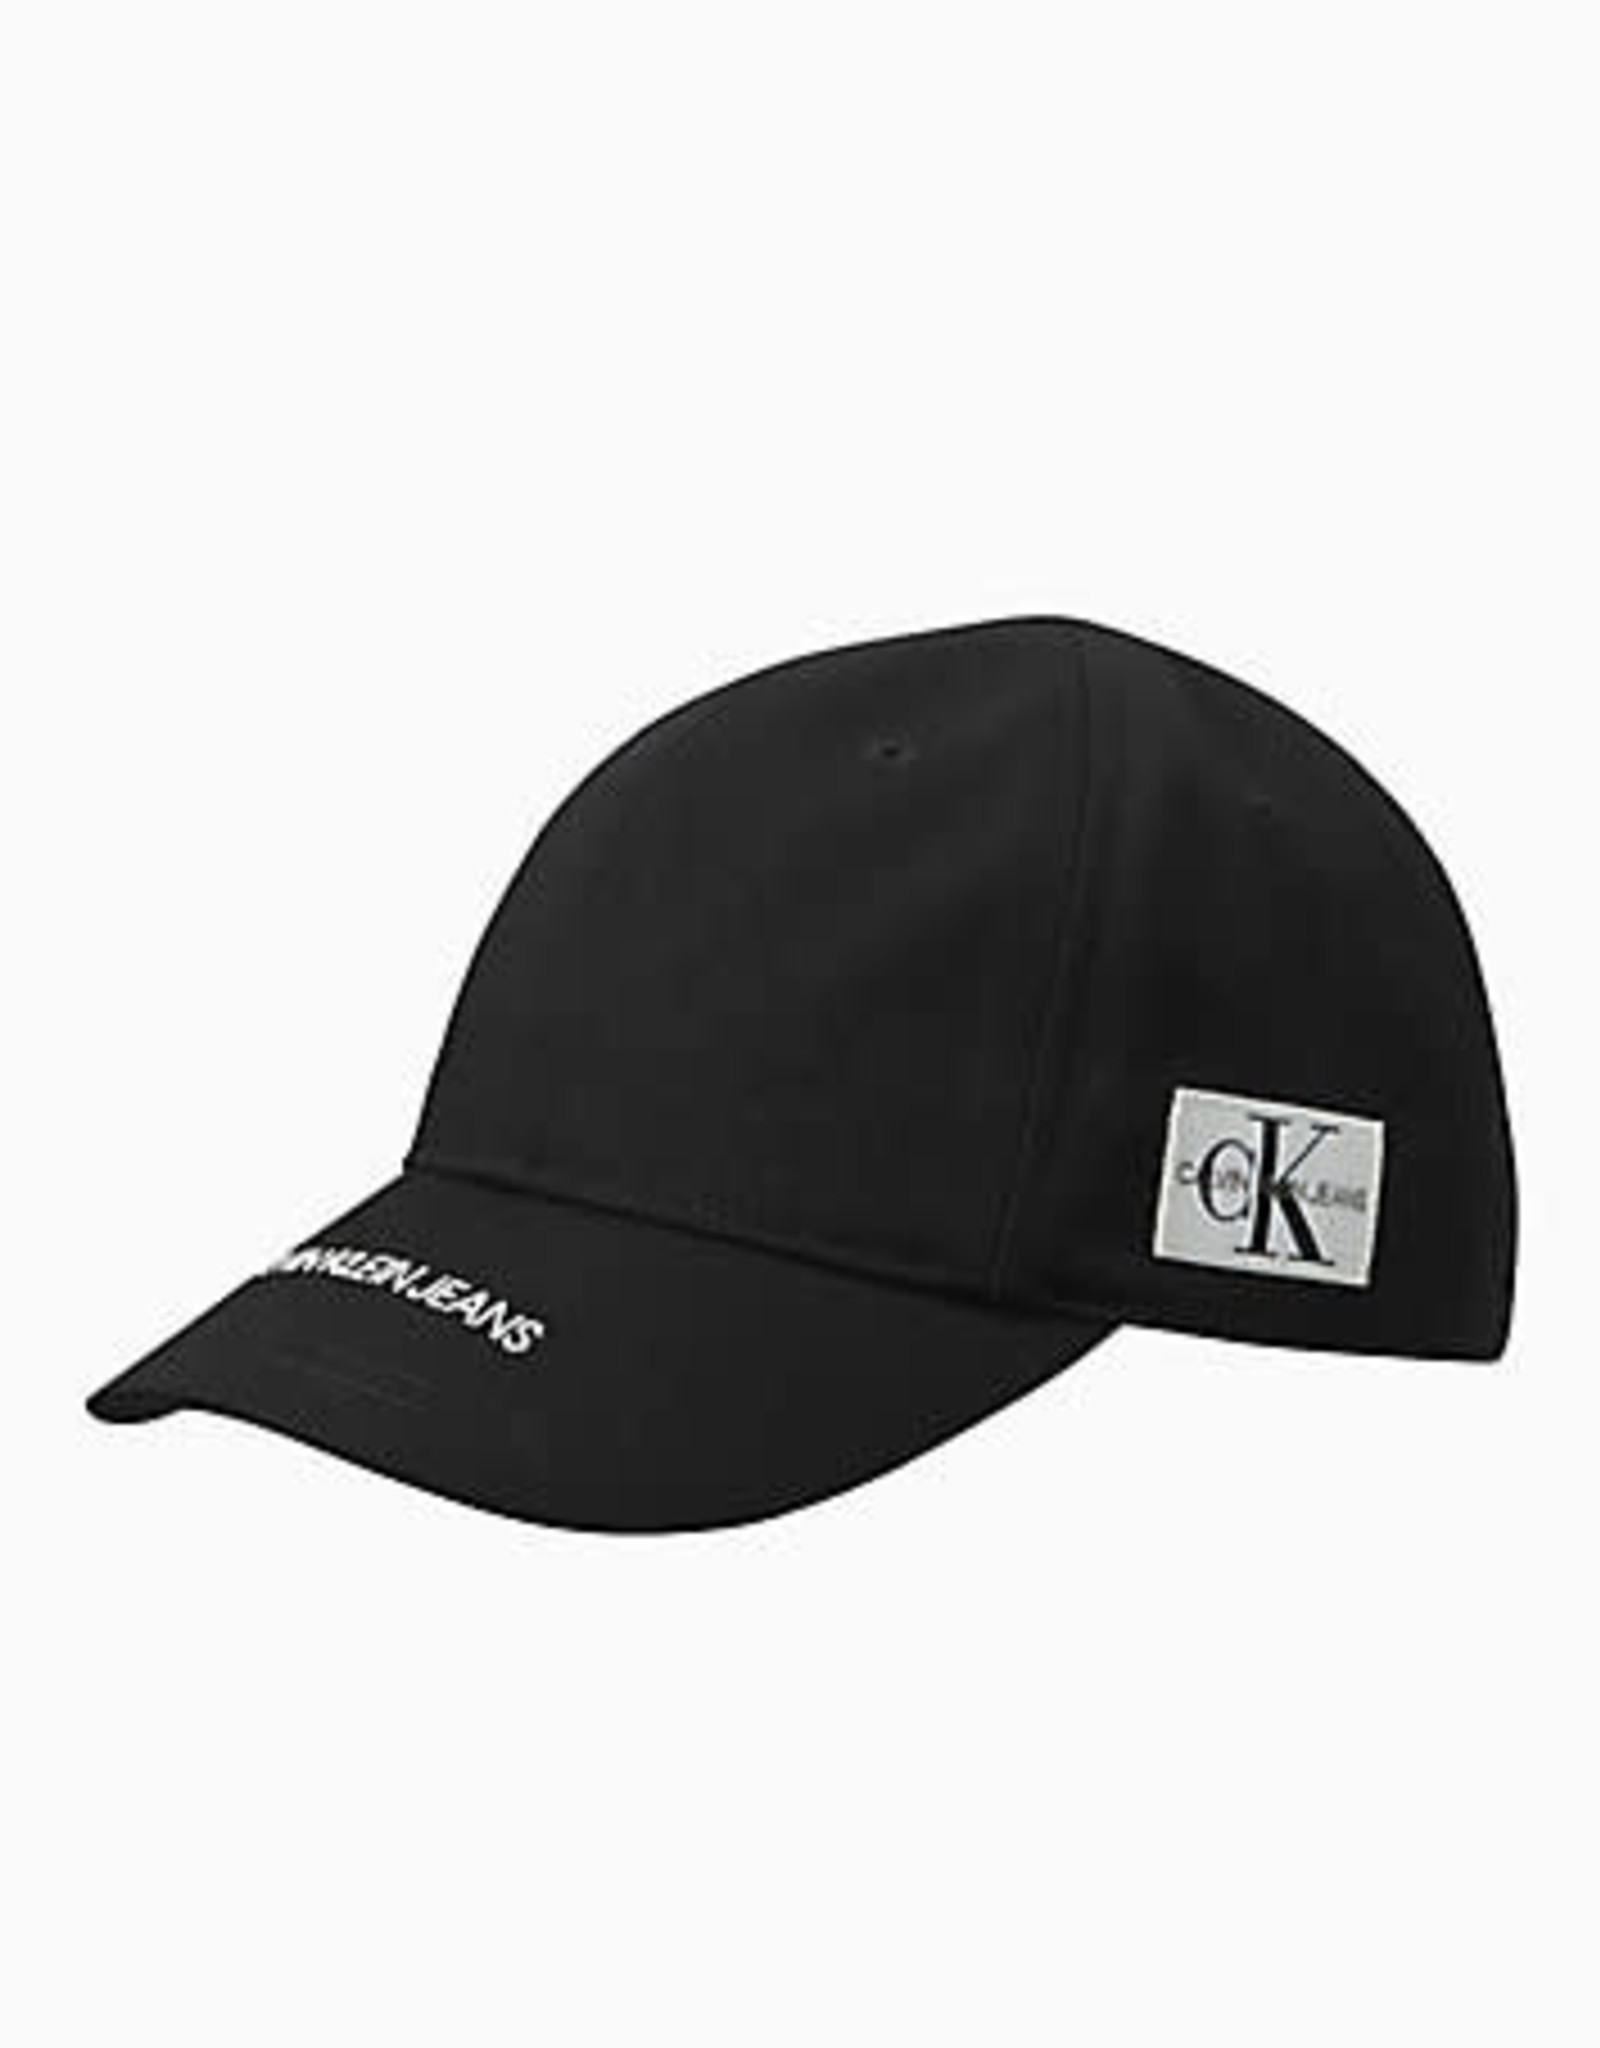 Calvin Klein Institutional logo cap  L-XL